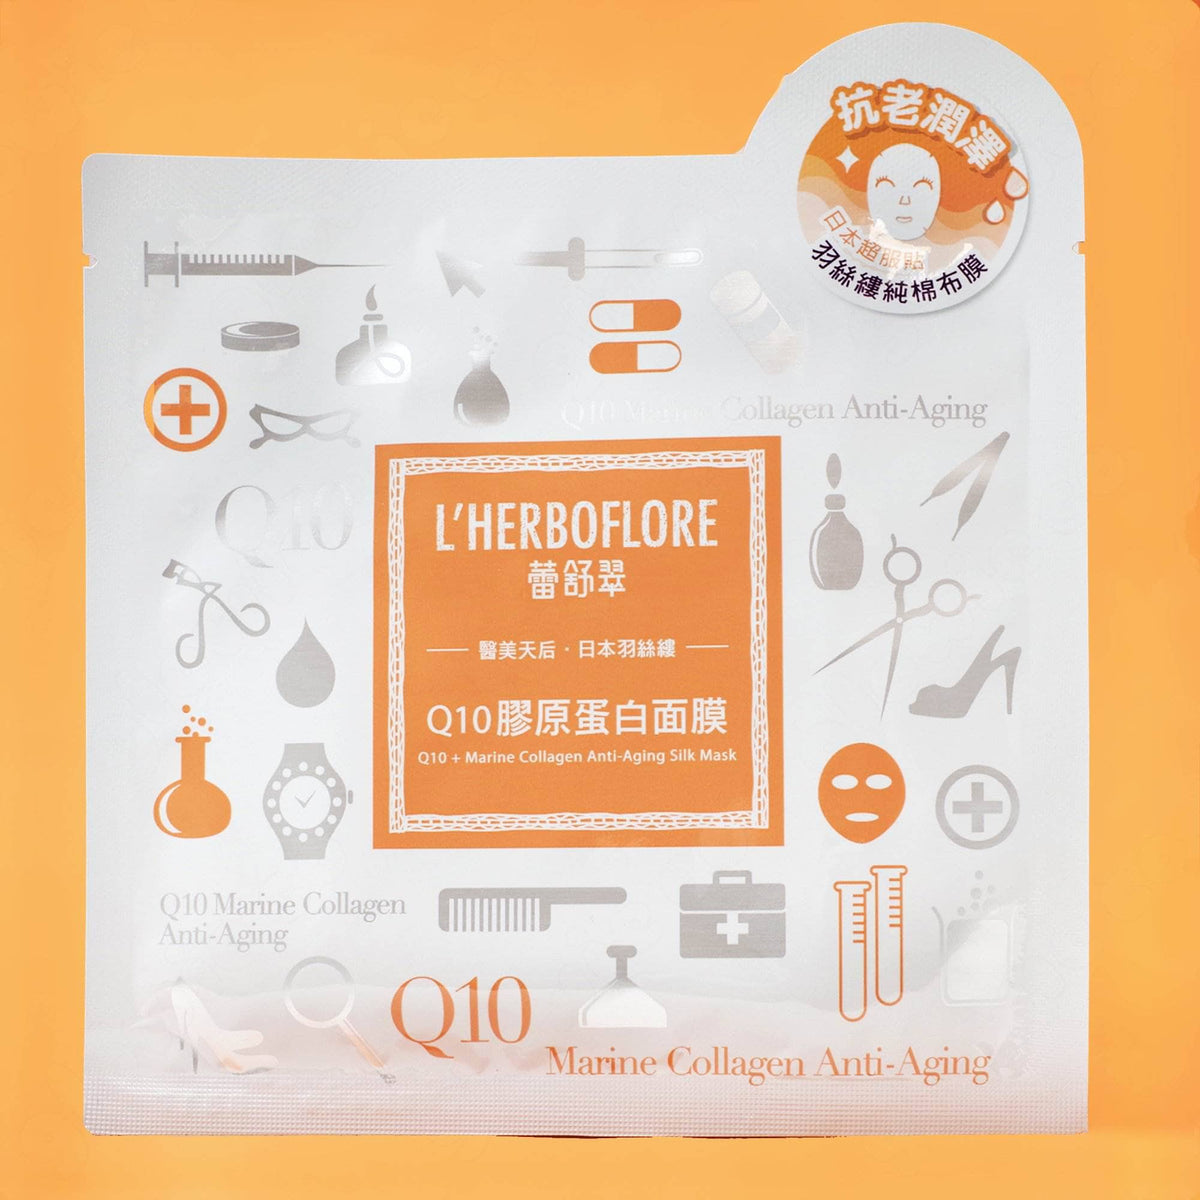 L'Herboflore Q10+Marine Collagen Anti-Aging Silk Mask